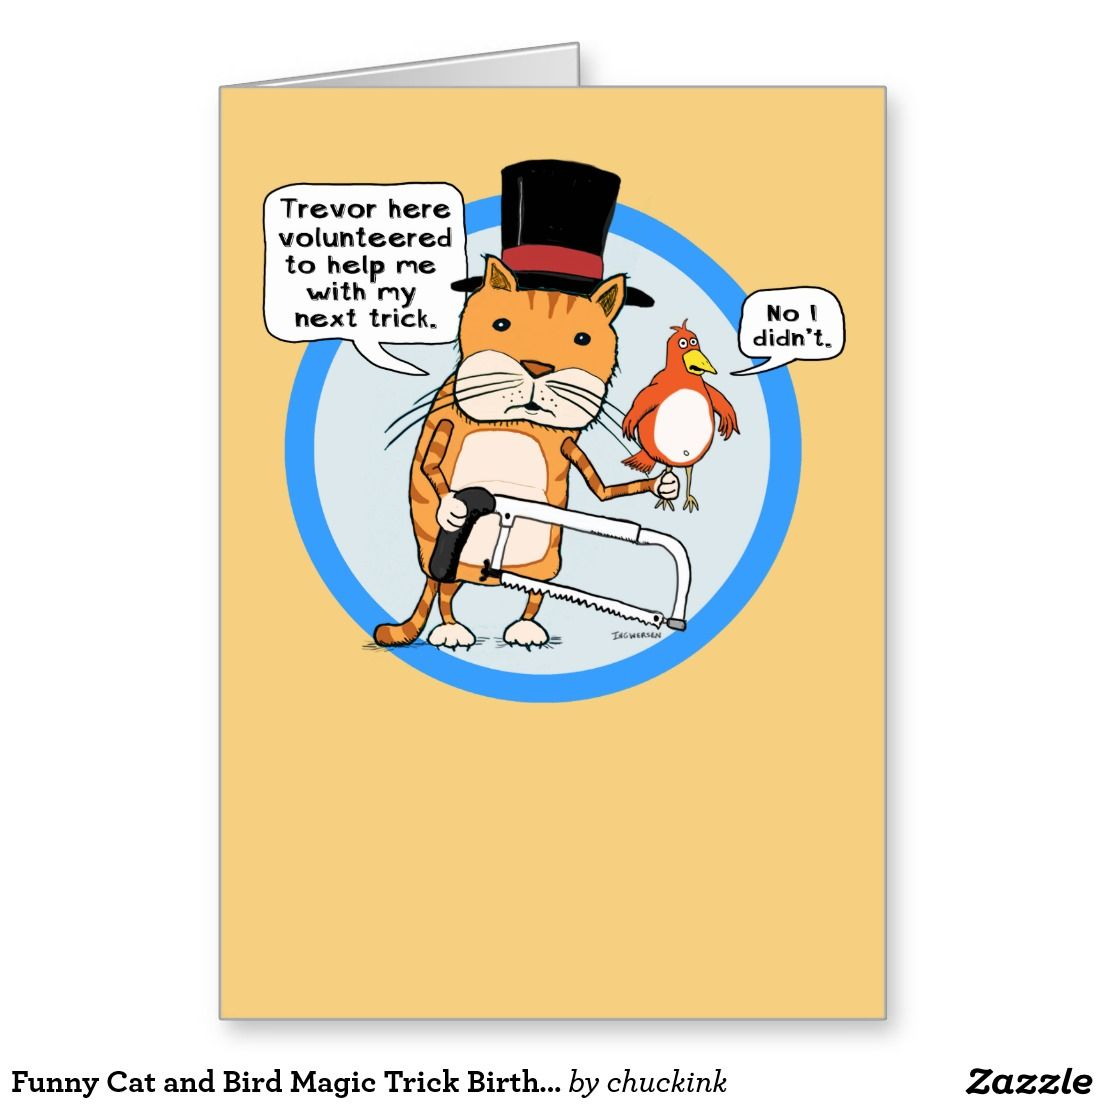 Funny cat and bird magic trick birthday greeting card funny funny cat and bird magic trick birthday greeting card kristyandbryce Images